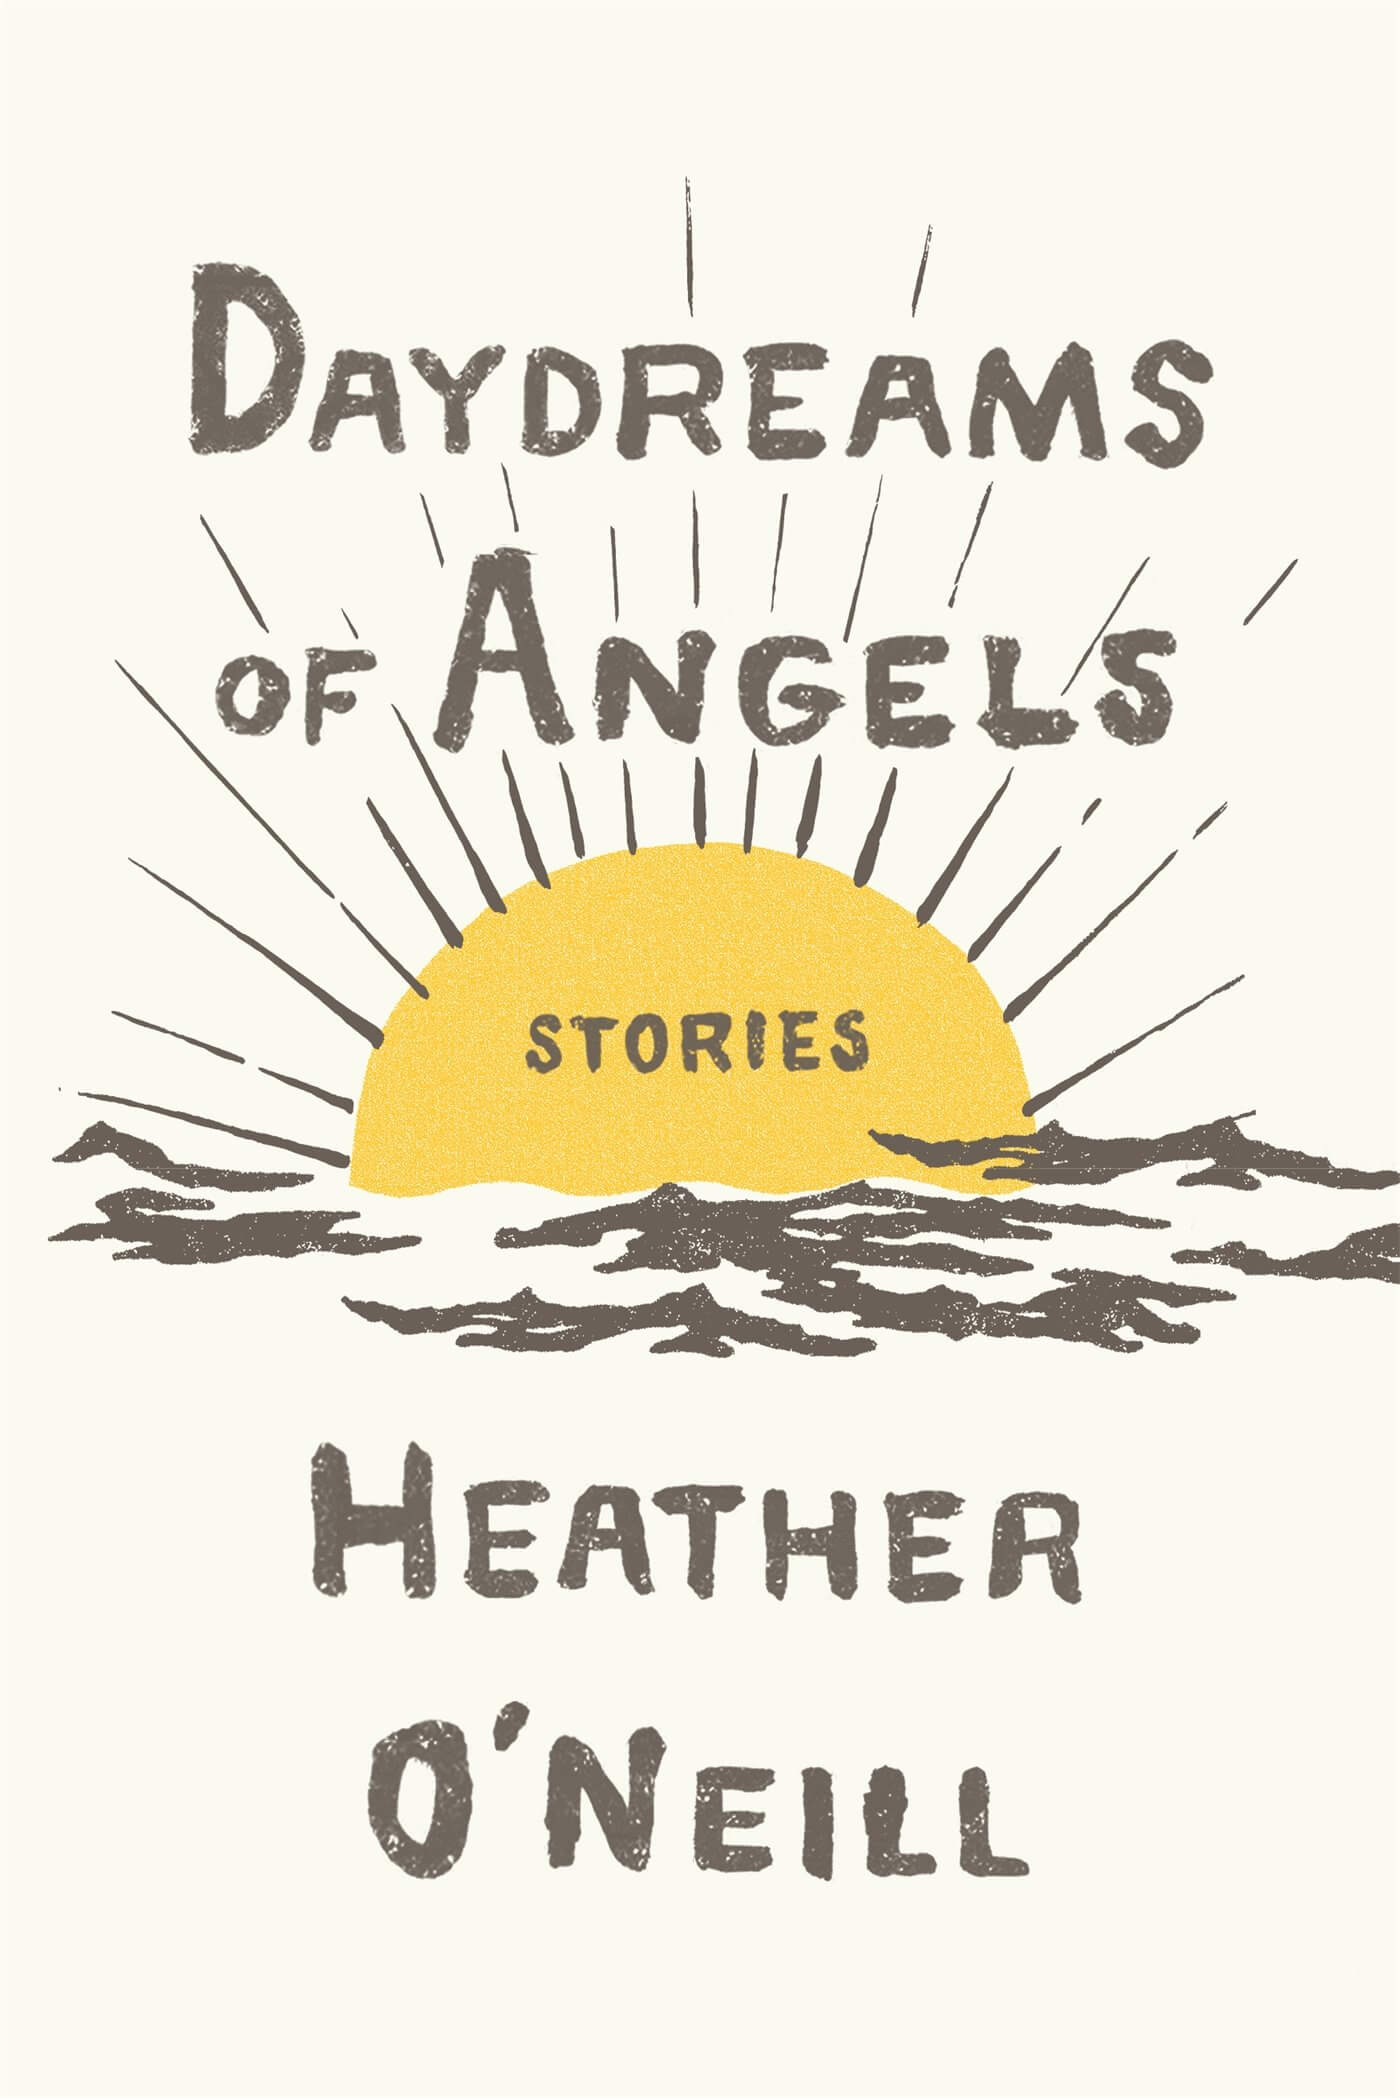 Daydreams of Angels book cover image